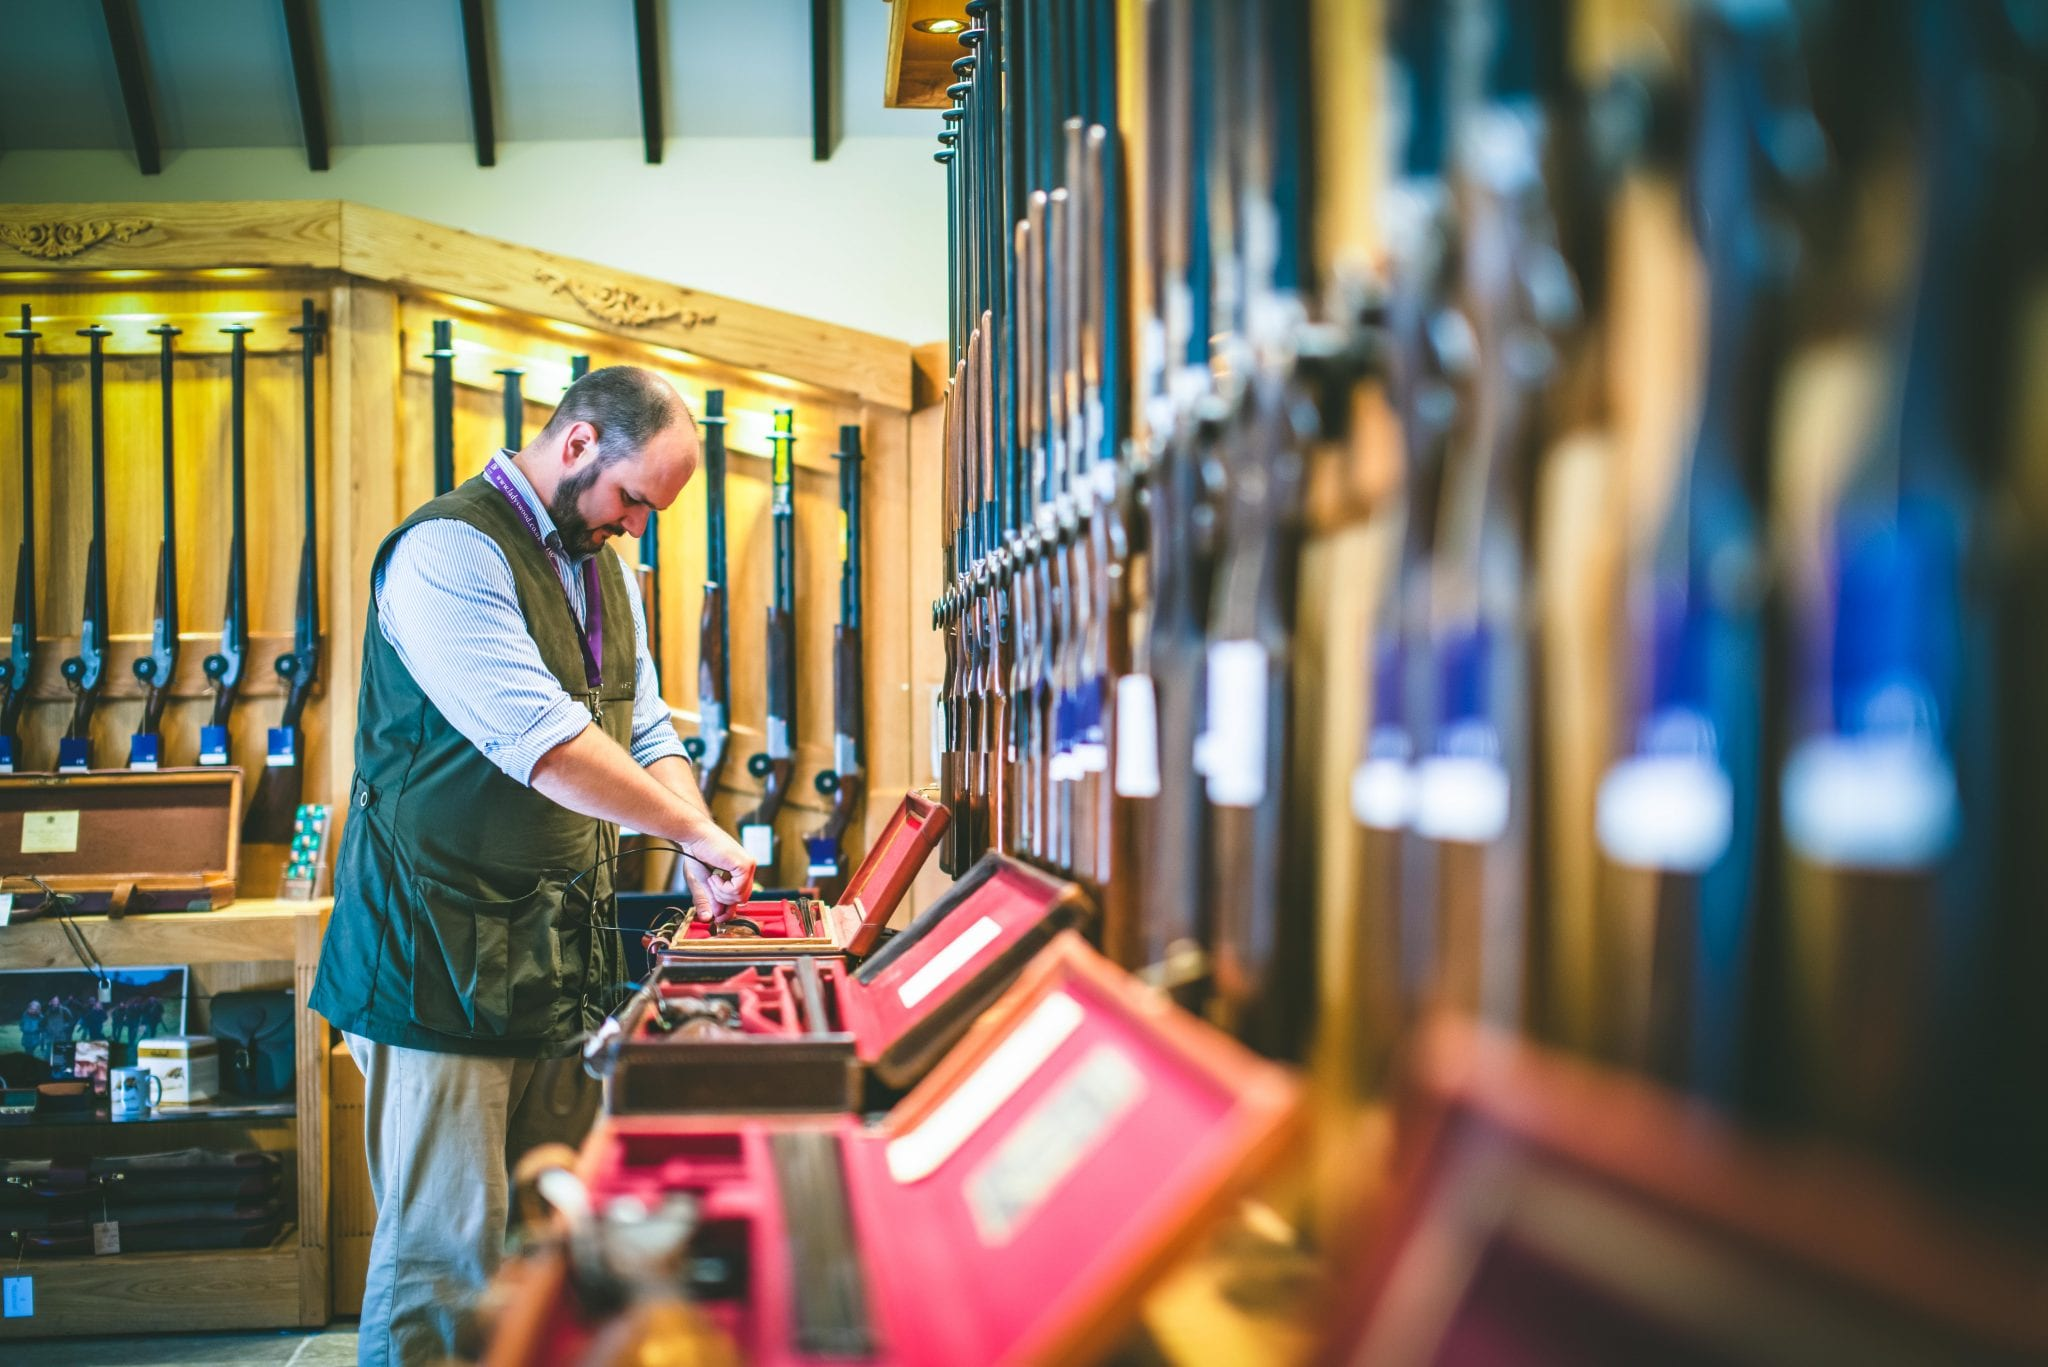 Shooting school manager Chris Hanks looks at a shotgun in the Sportarm at Lady's Wood gun room